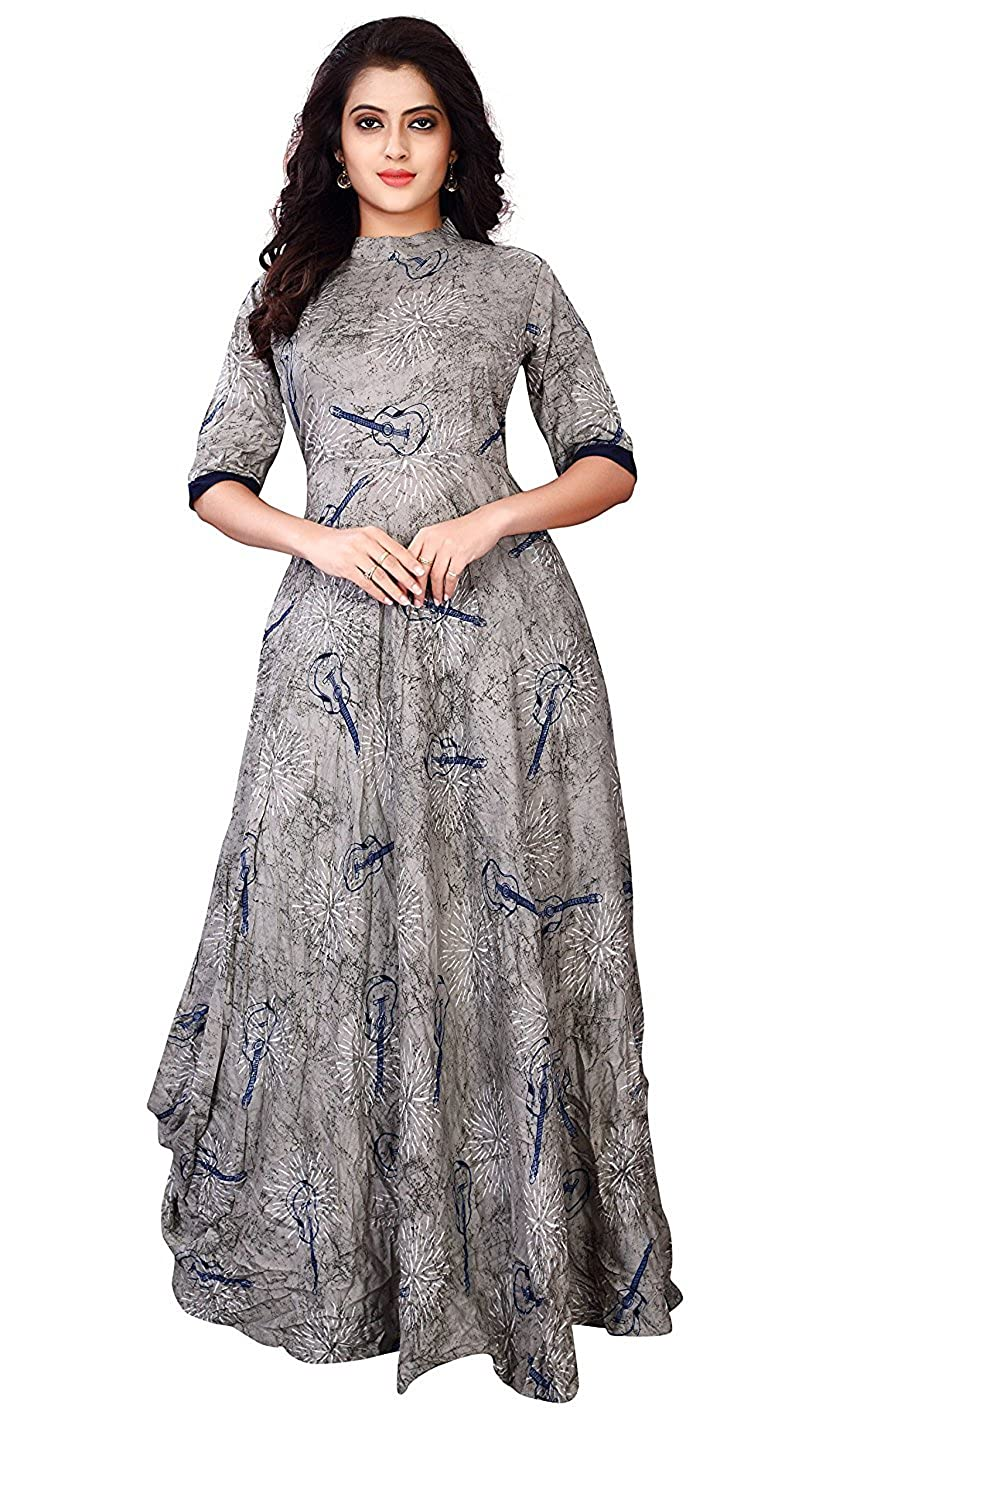 Women's Grey Printed Dress